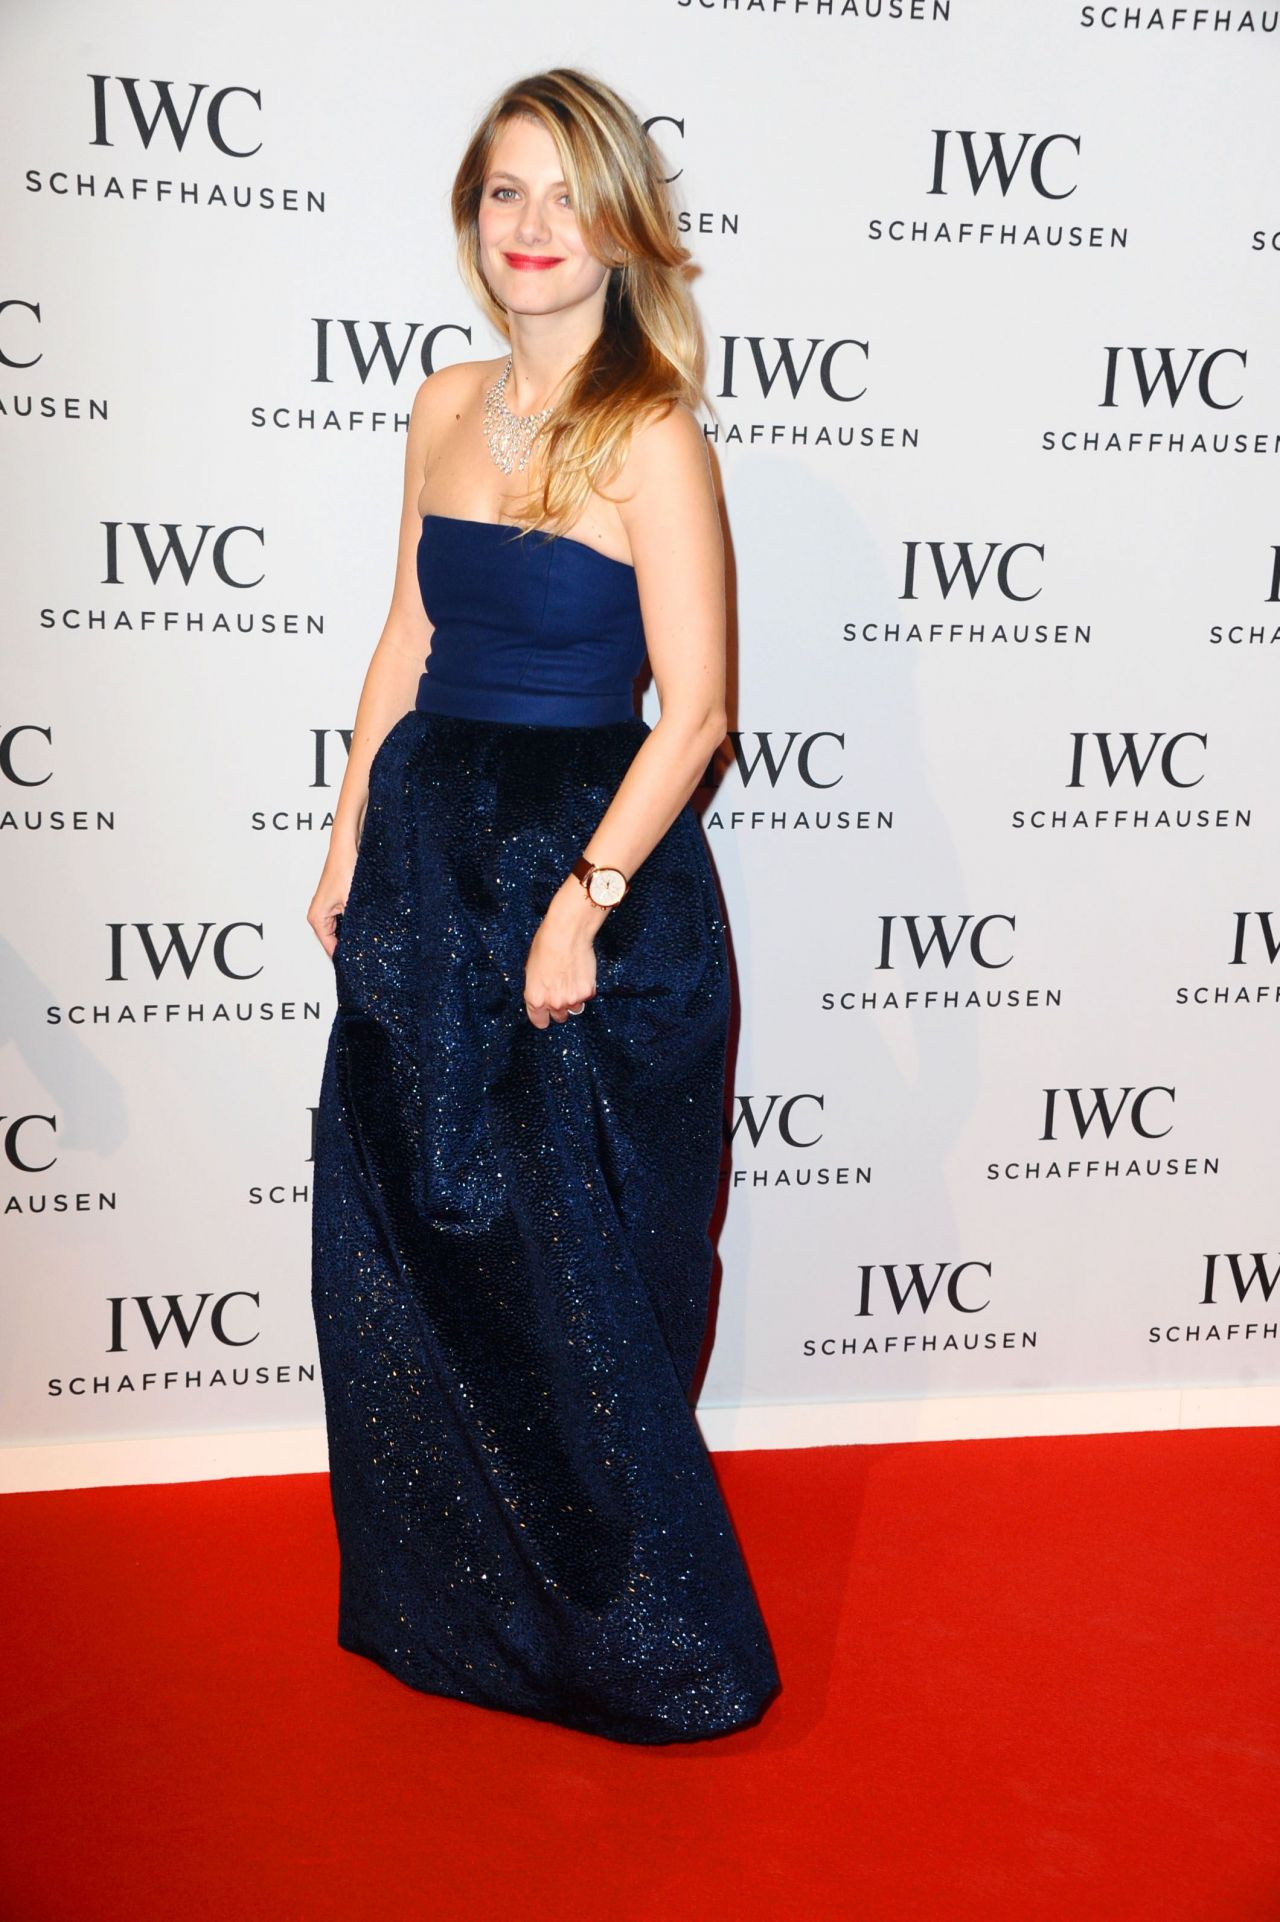 Mélanie Laurent - Salon International de la Haute Horlogerie in Geneva - February 2014